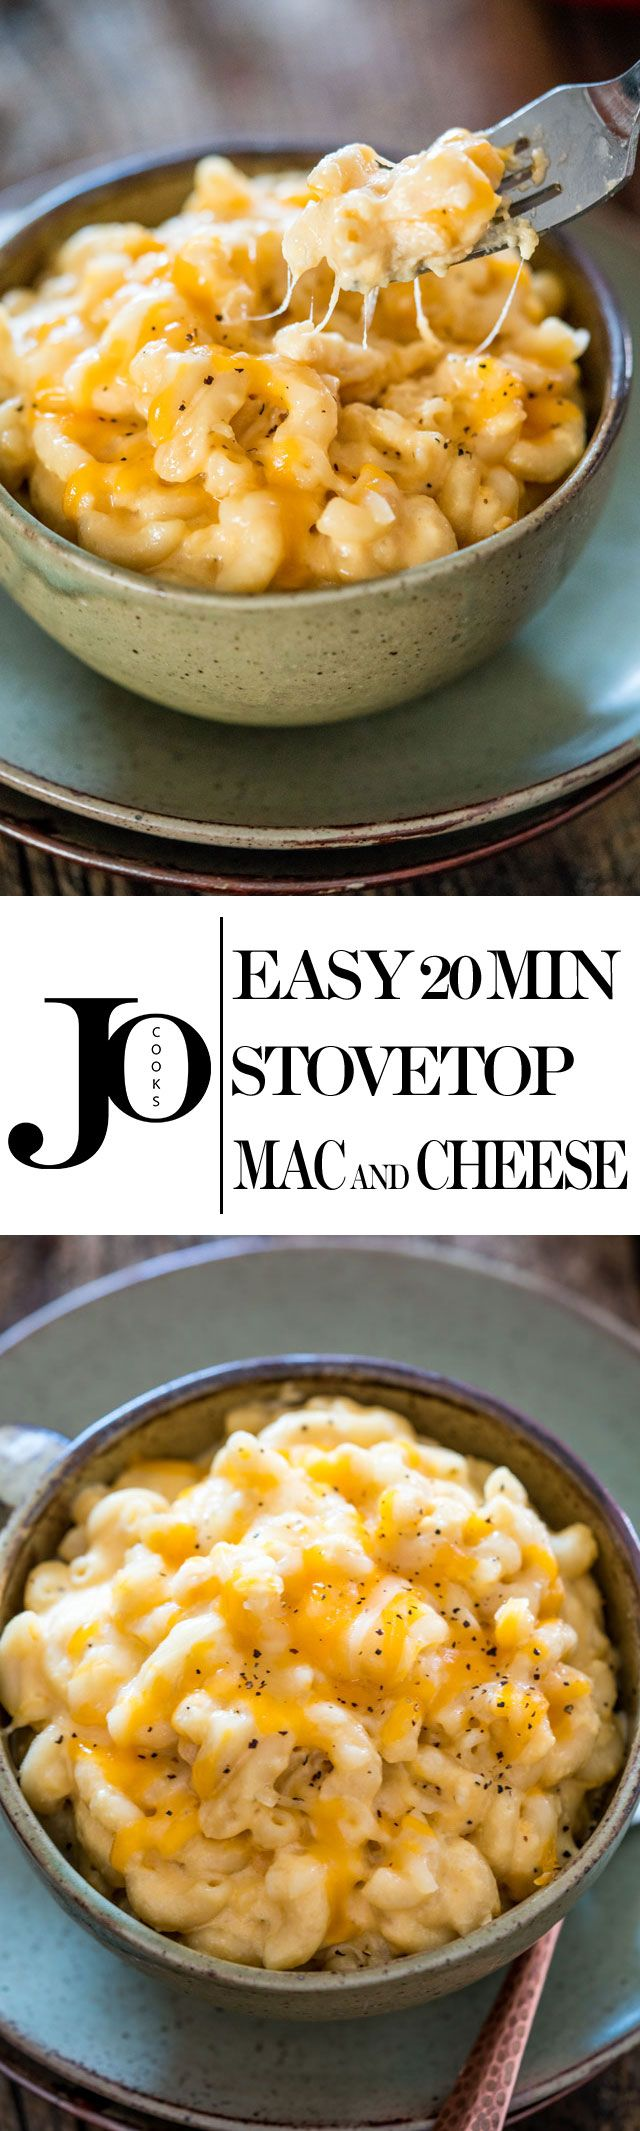 189 best images about comfort food on pinterest easy stovetop mac and cheese forumfinder Gallery